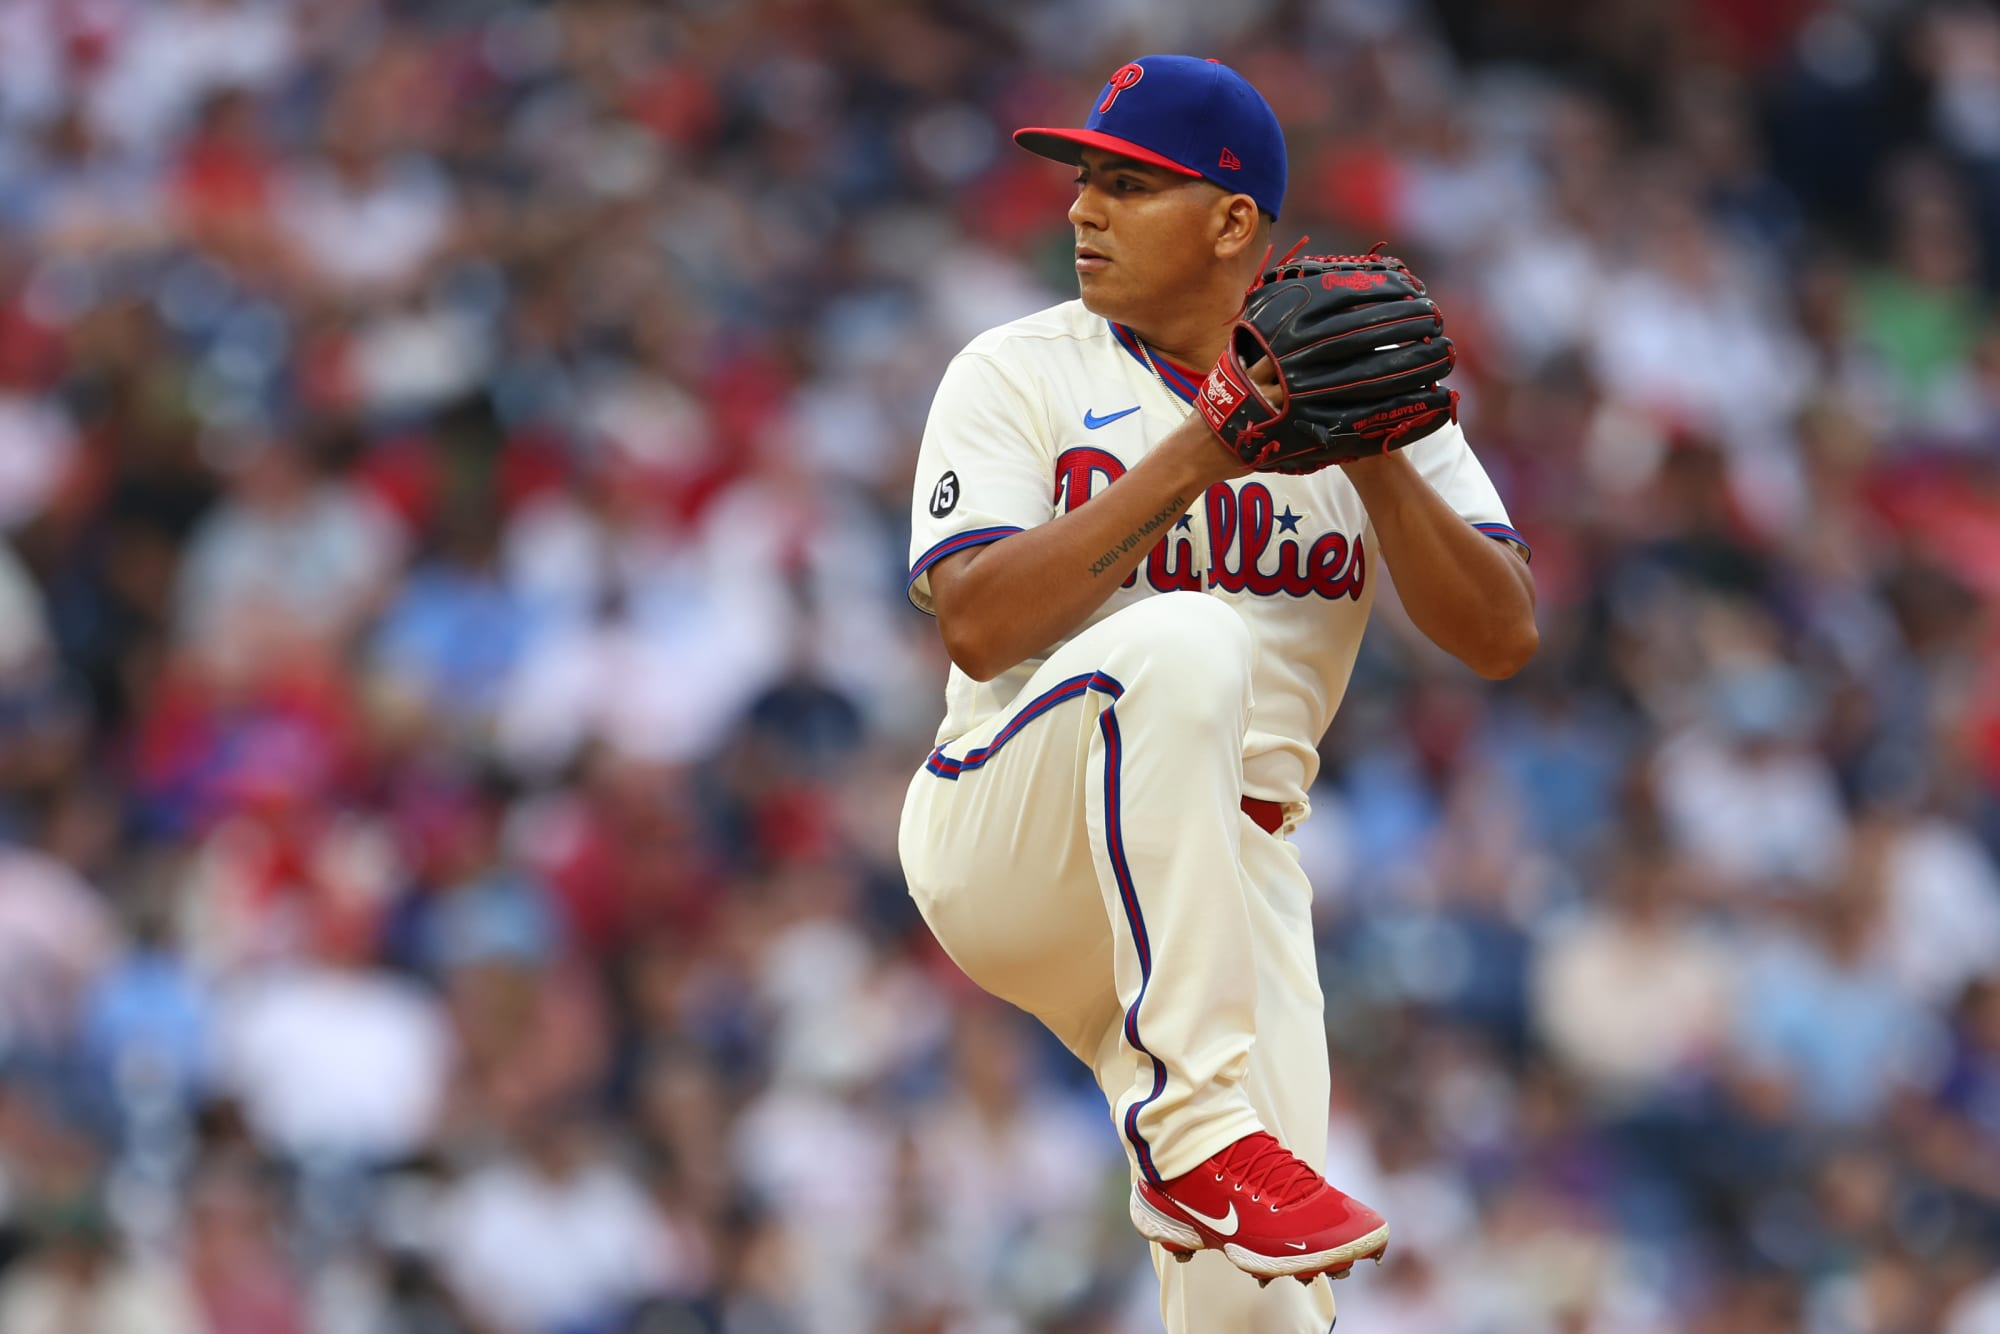 Phillies Game Today, August 2: Phillies vs Nationals Odds, Starting Lineup, Pitching Matchup, Predictions, Live Stream, and TV Channel